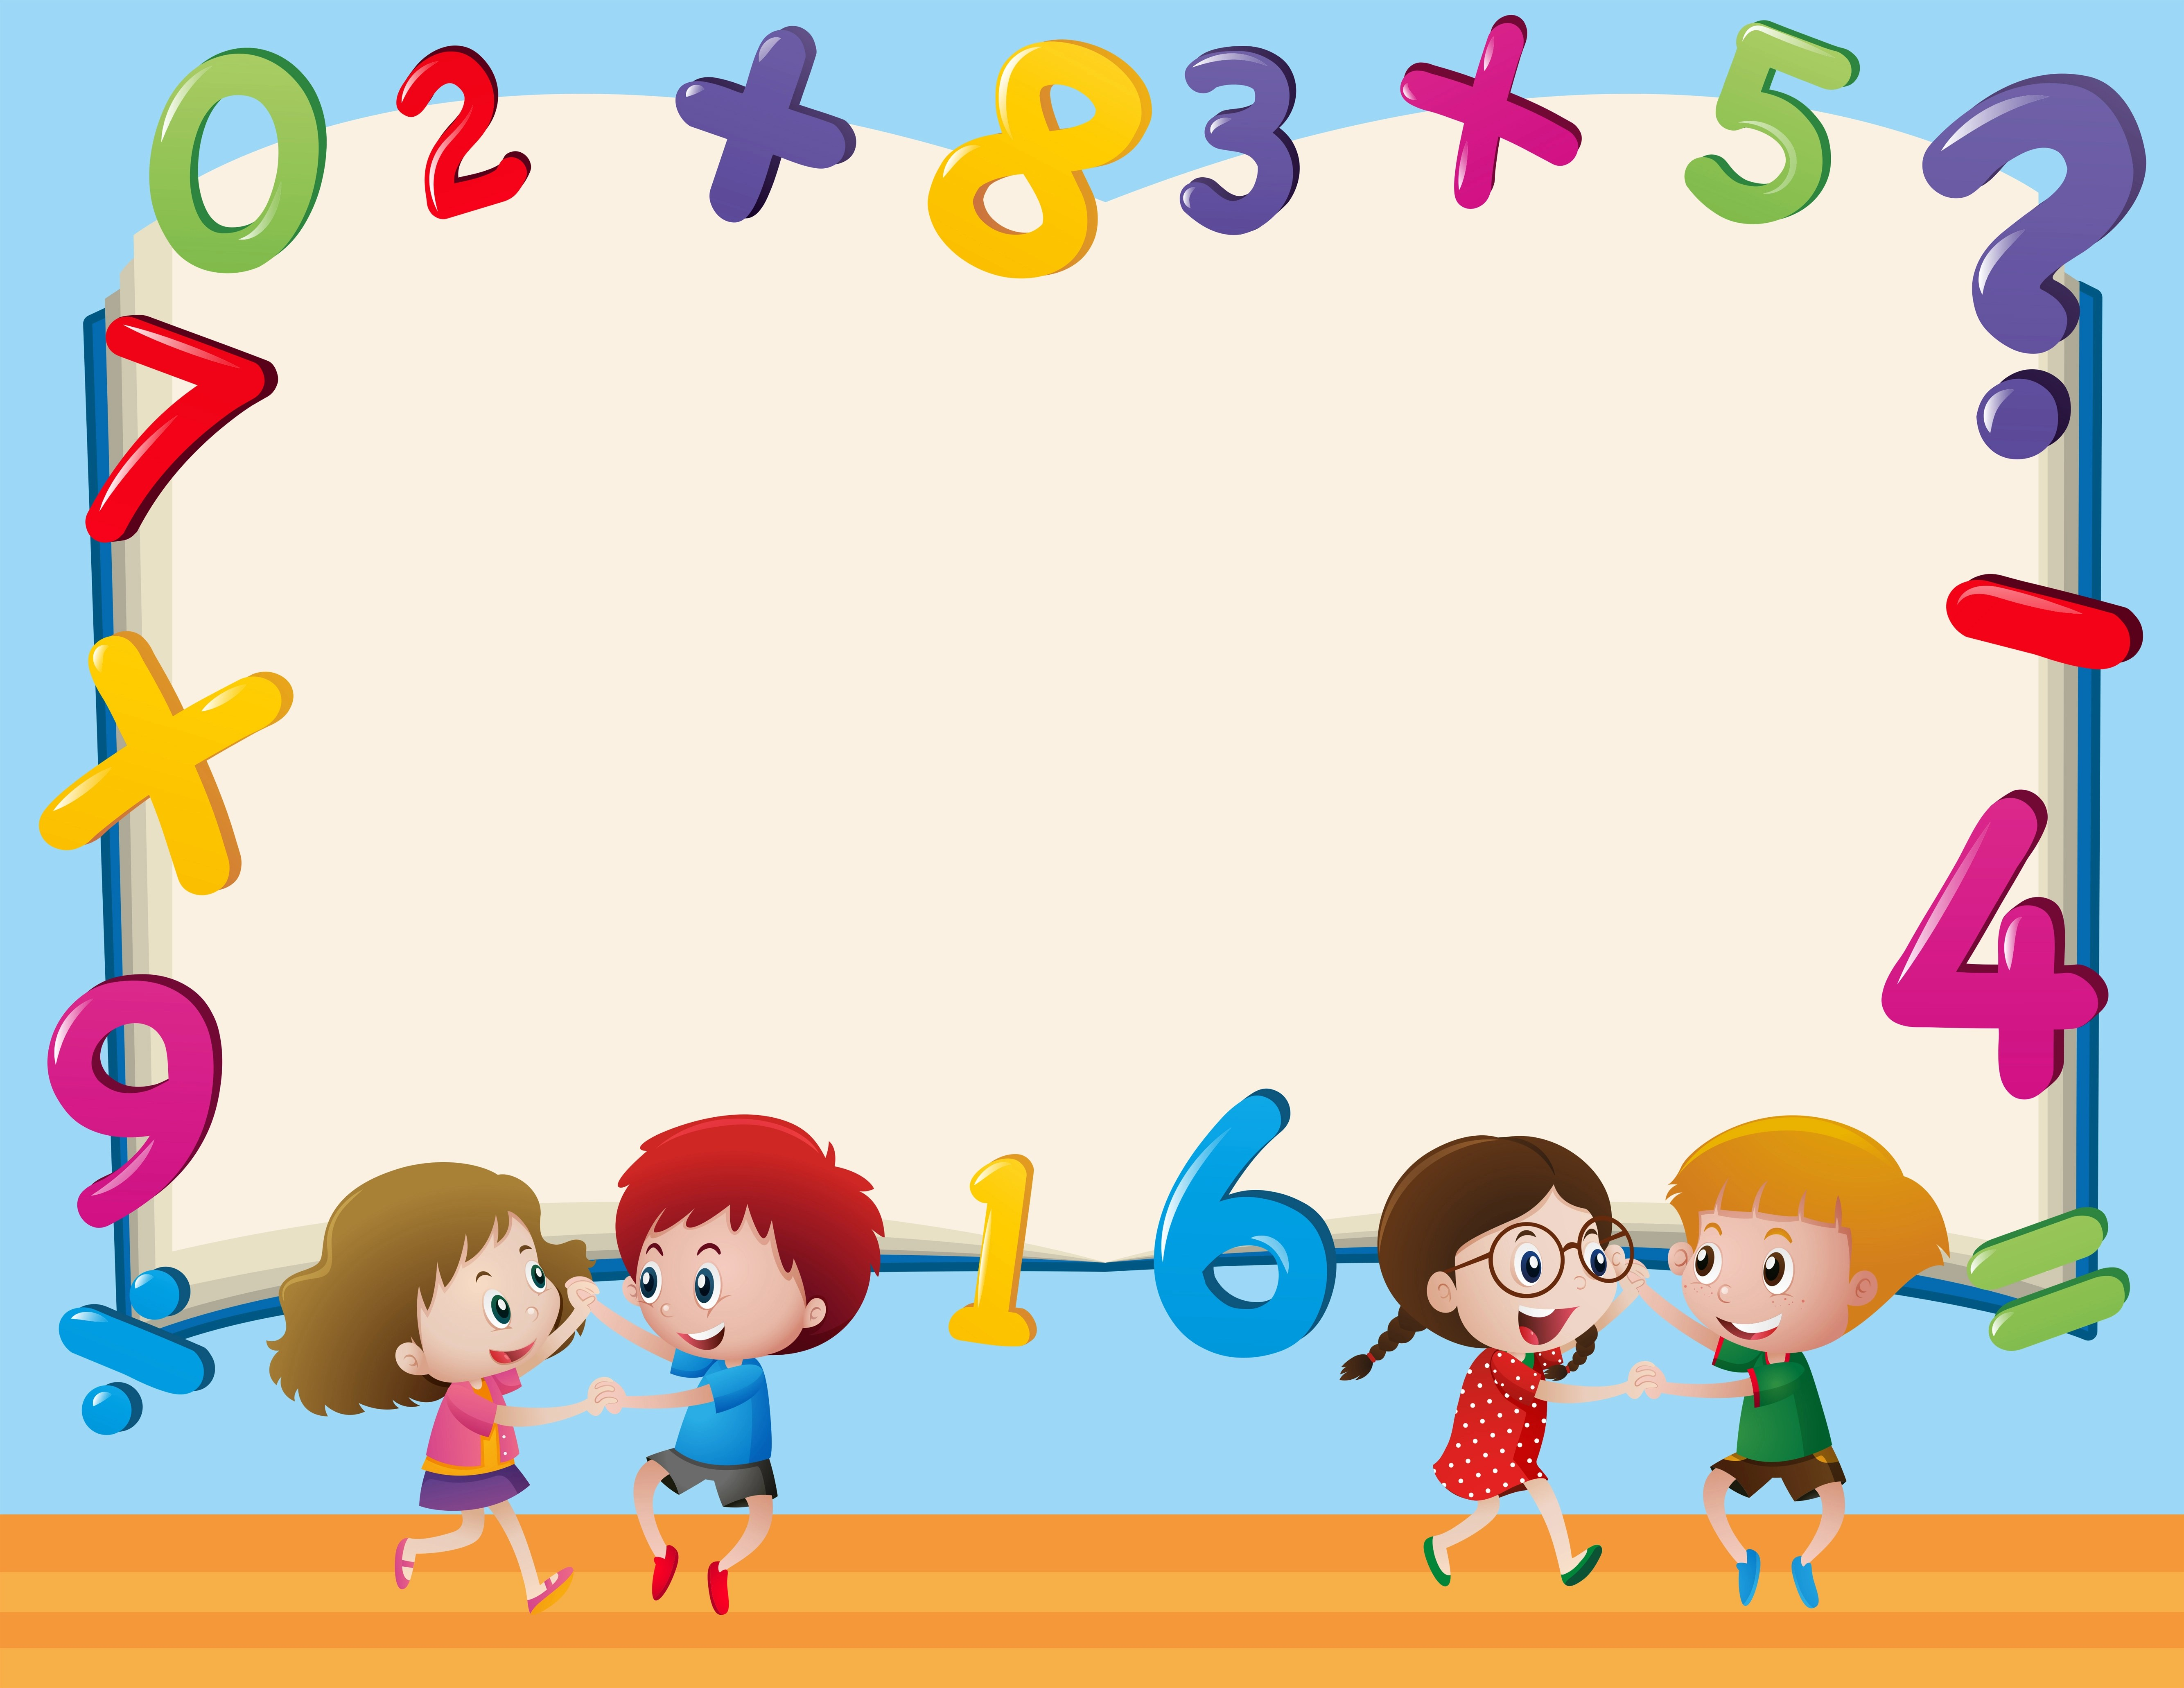 Border Template With Kids And Numbers